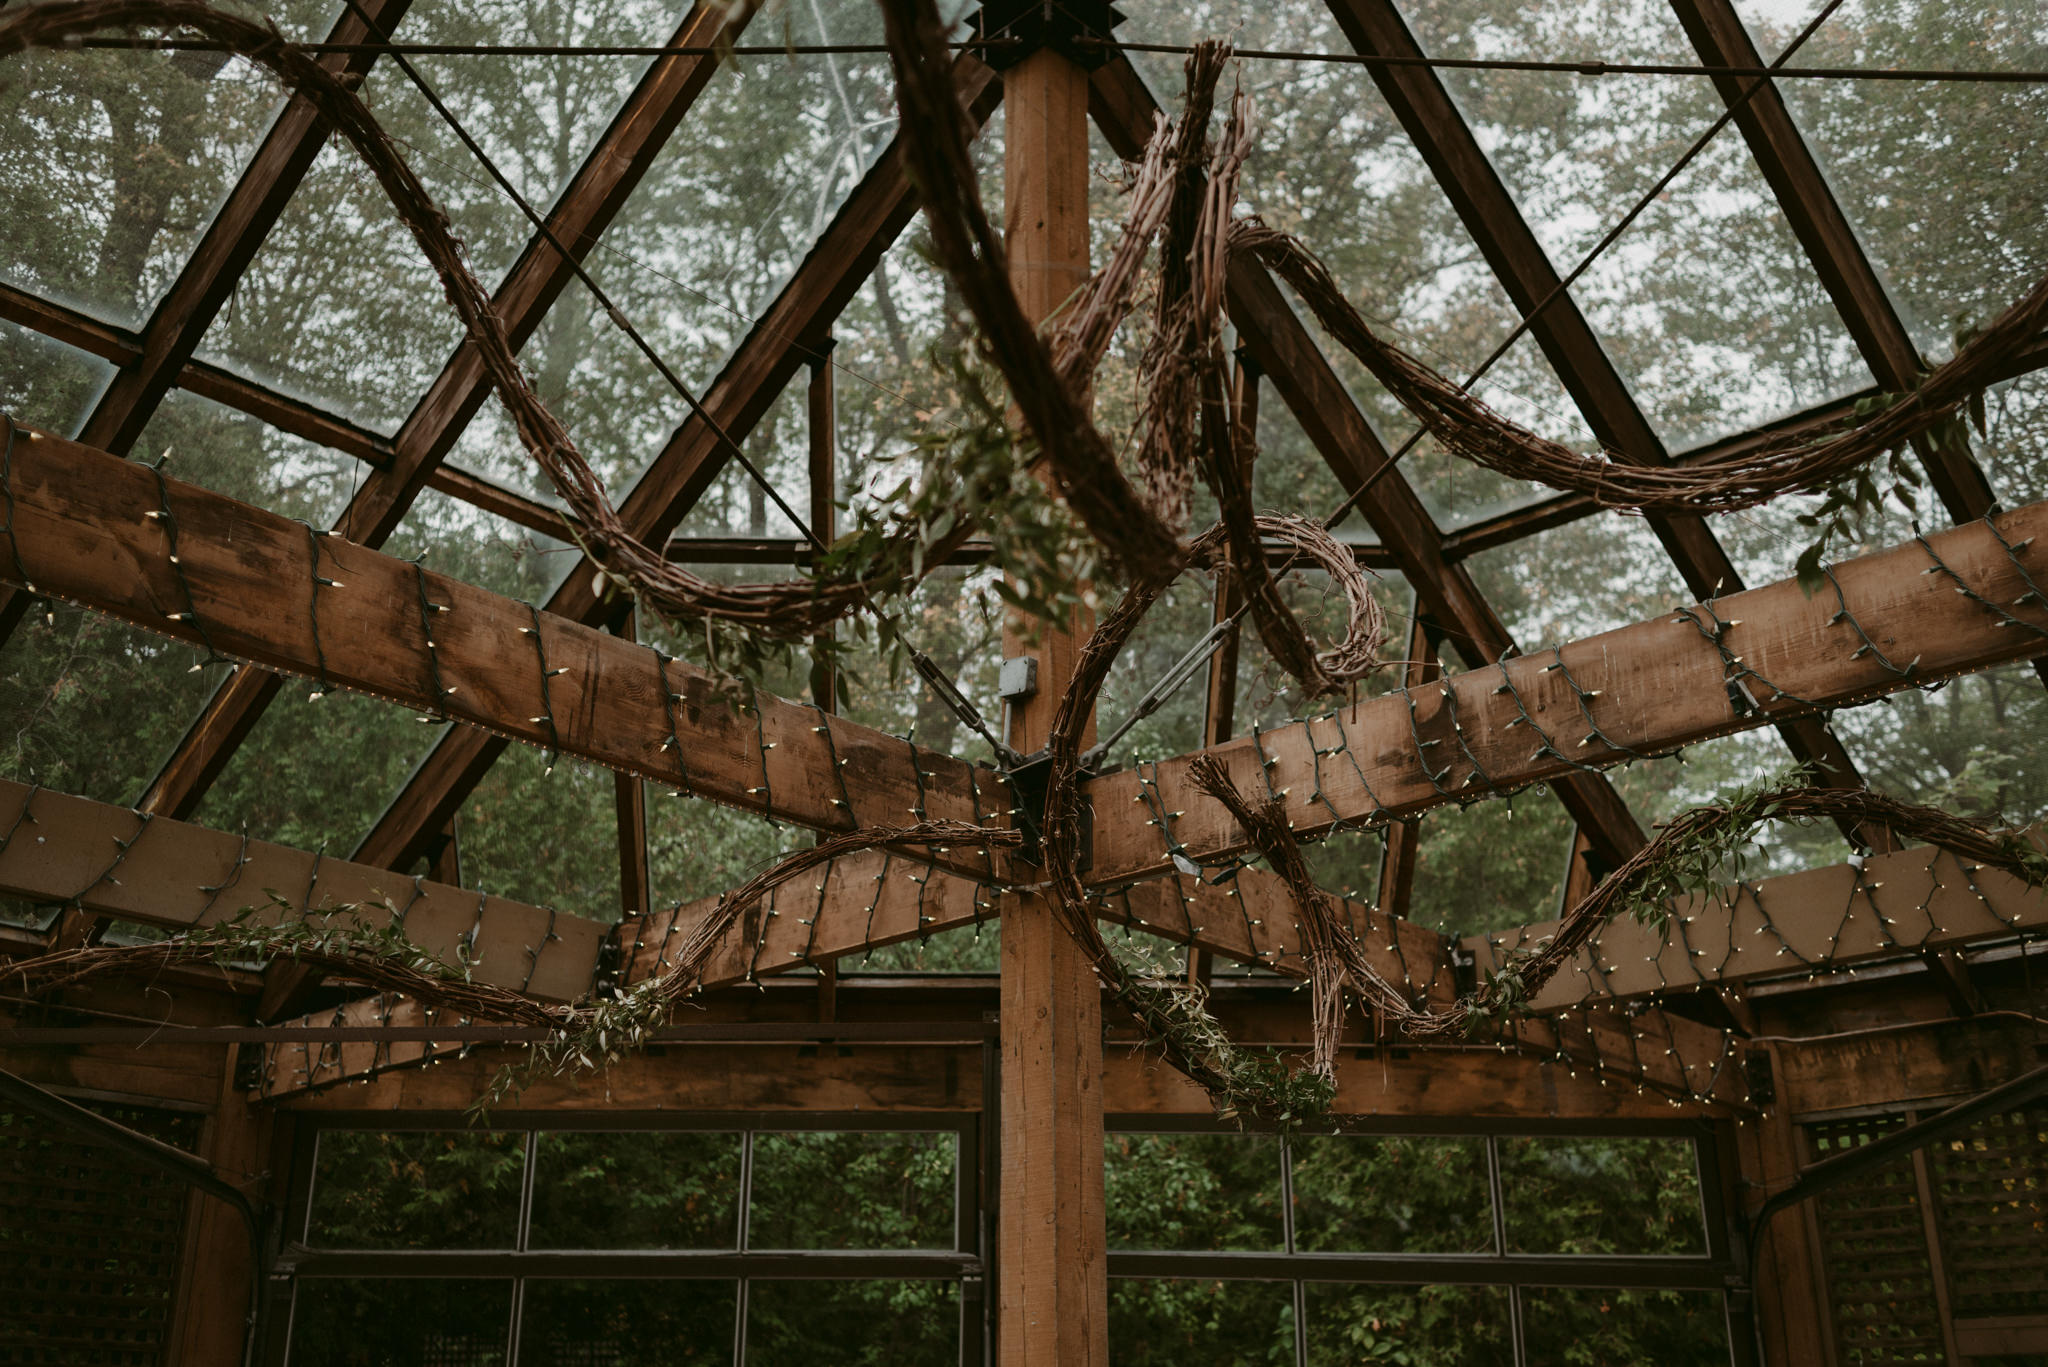 Wooden beams covered in vines and string lights for wedding reception at Kortright Centre for Conservation